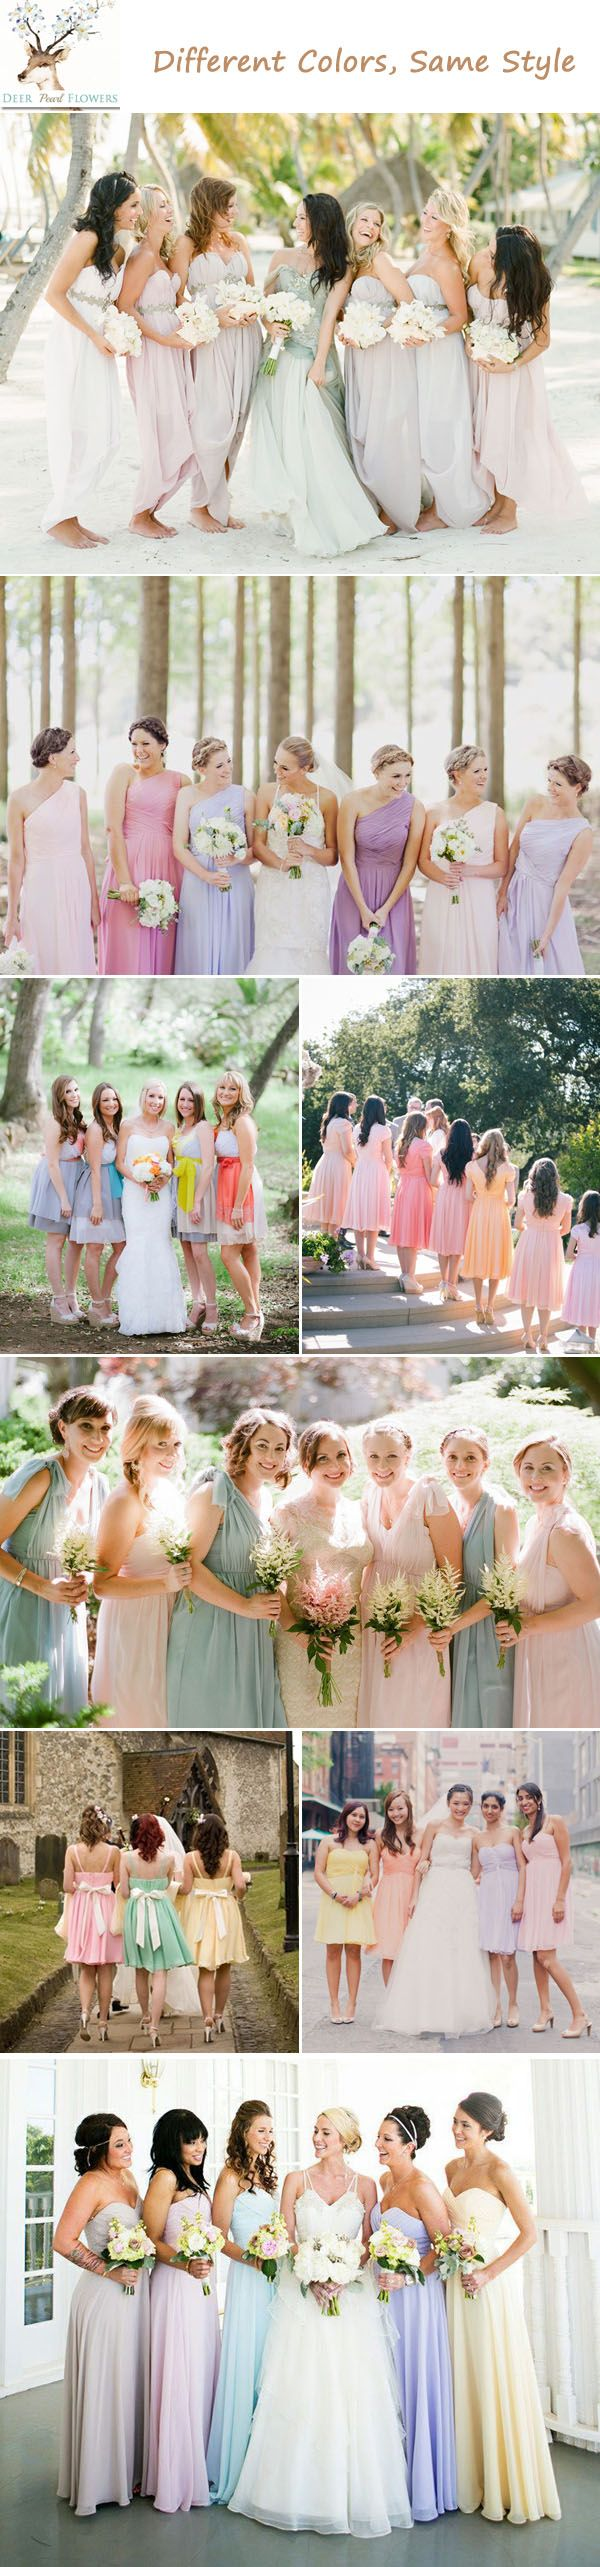 Top 6 Ways to Do Mismatched Bridesmaid Dresses | http://www.deerpearlflowers.com/top-6-ways-to-do-mismatch-bridesmaid-dresses/